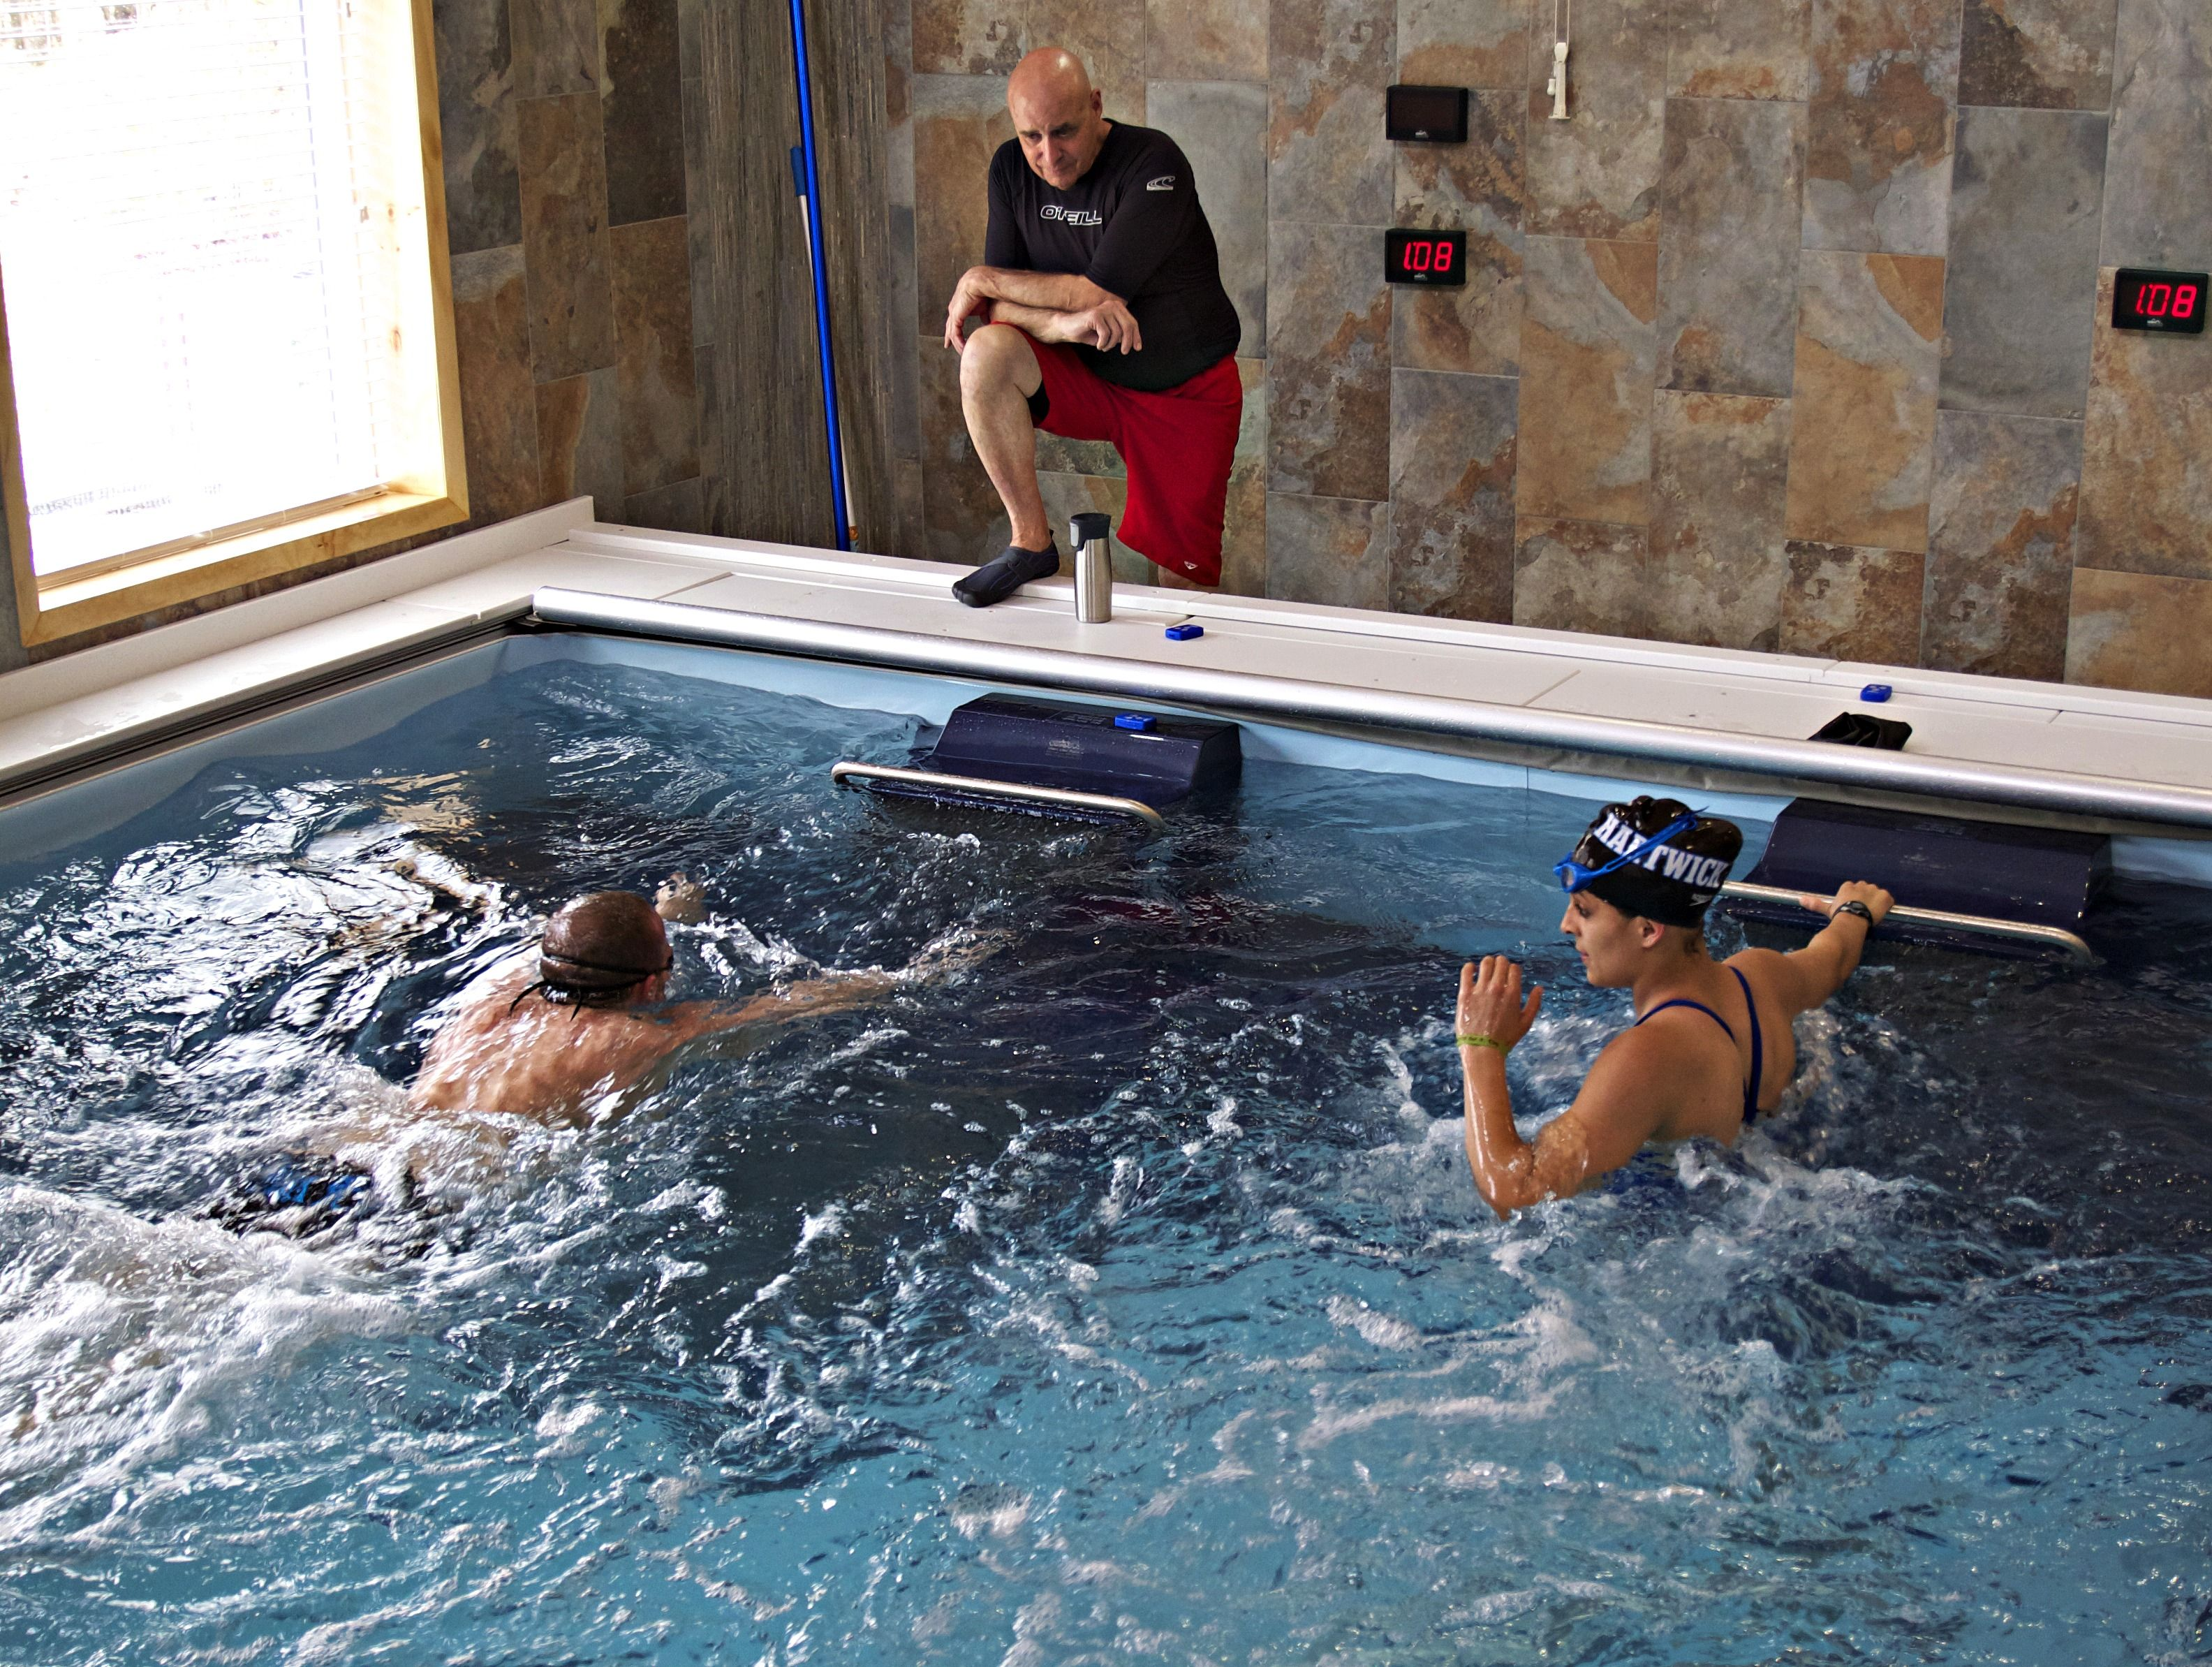 This Dual Propulsion Endless Pool Allows Room For A Pair Of Swimmers To Train At Once As A Coach Looks On Endless Pool Pool Workout Aquatic Exercises